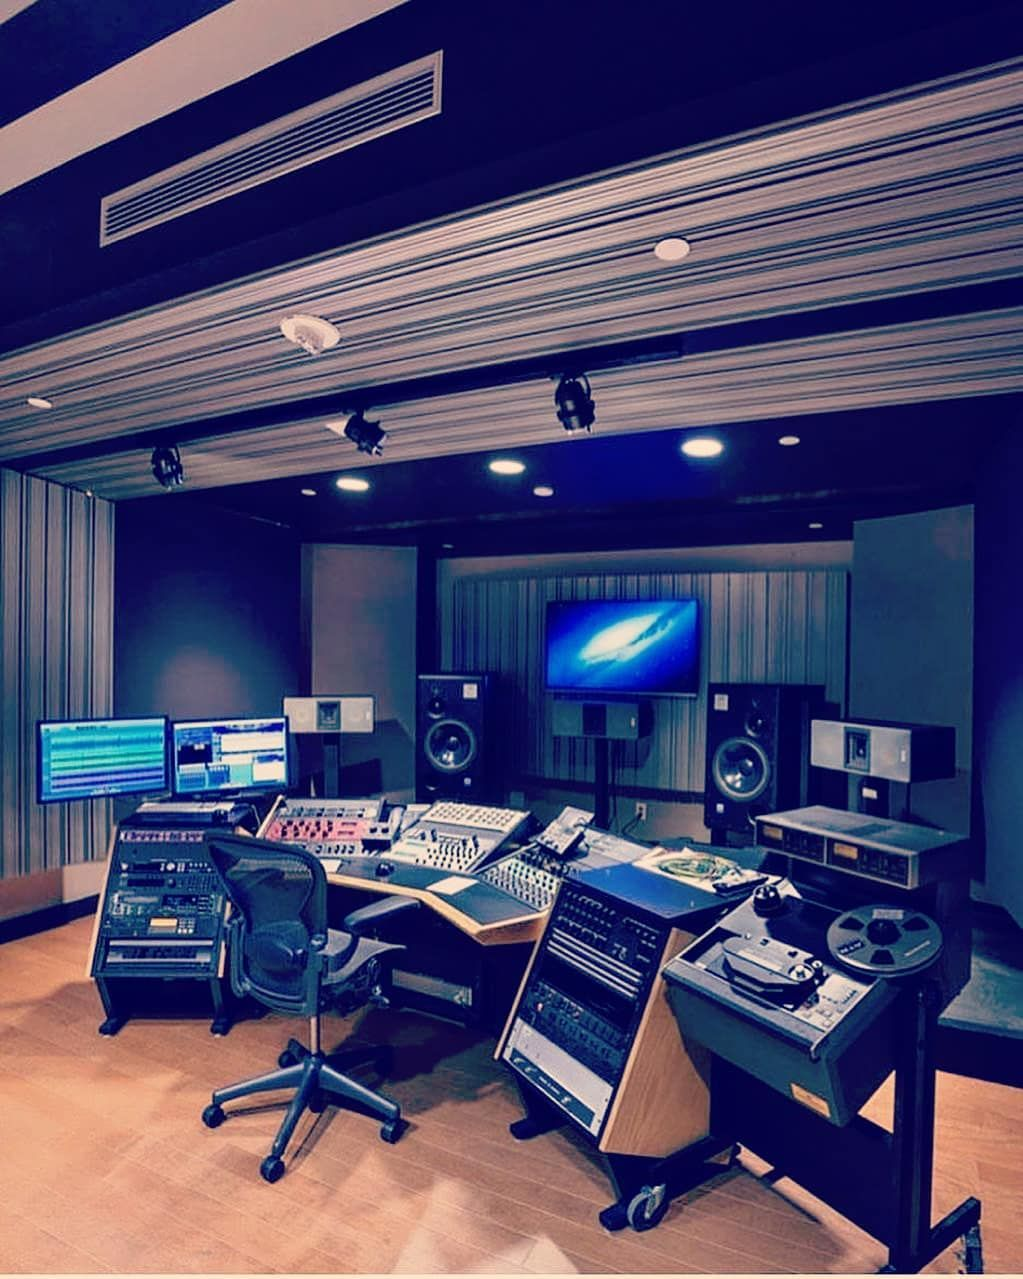 Pin By Teronexar On Music Studio Music Studio Room Music Studio Home Studio Music